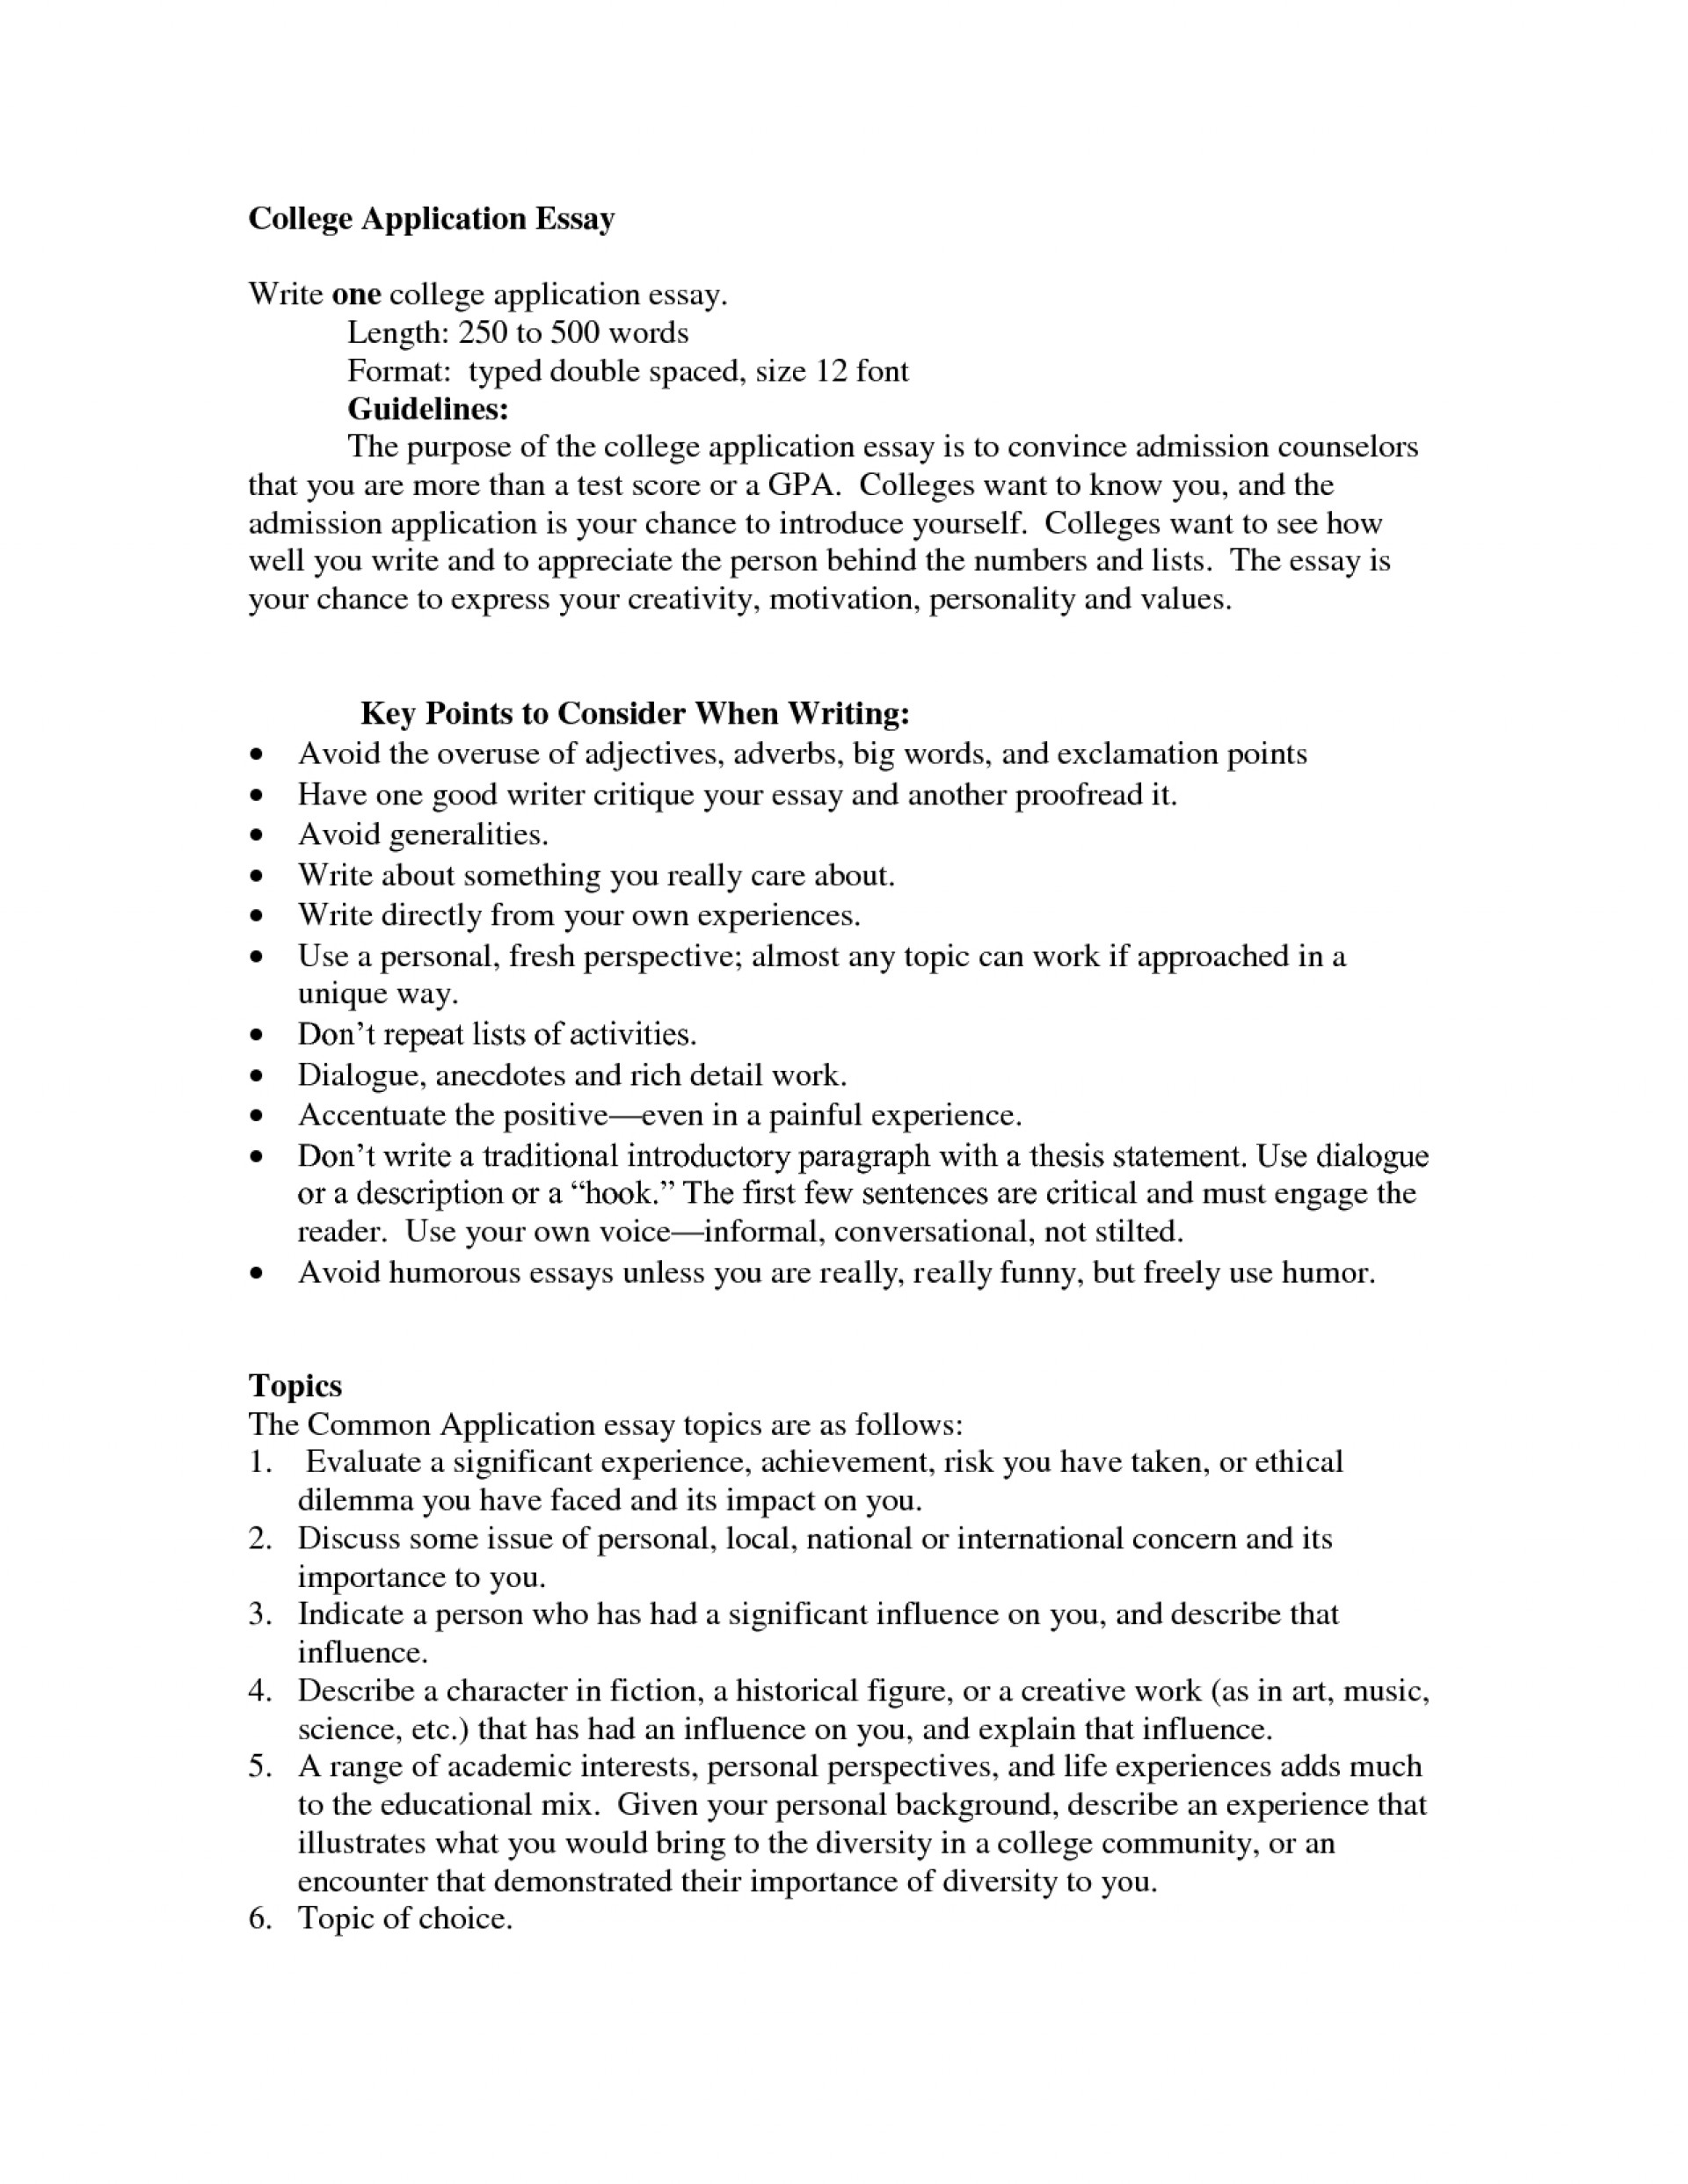 004 College Essay Header Application Heading Printables Corner For Ecza Solinf Co Int Admission Format Archaicawful Margins 1920